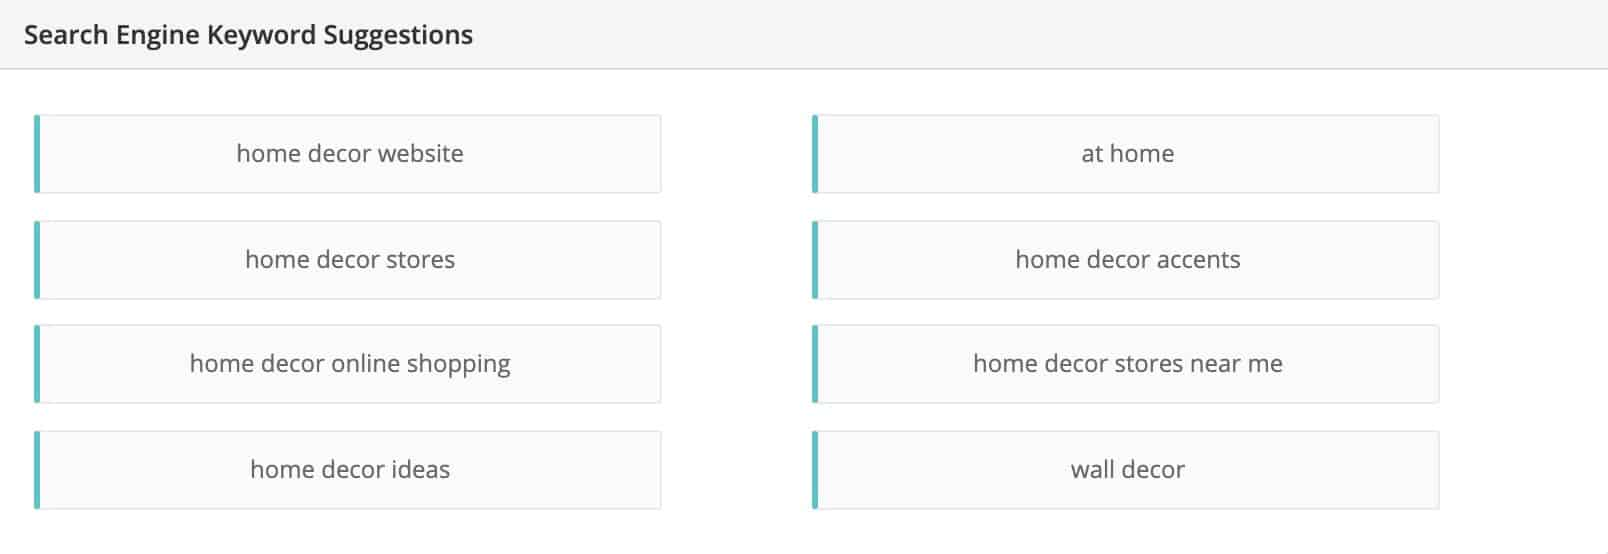 Home Decor niche related keywords